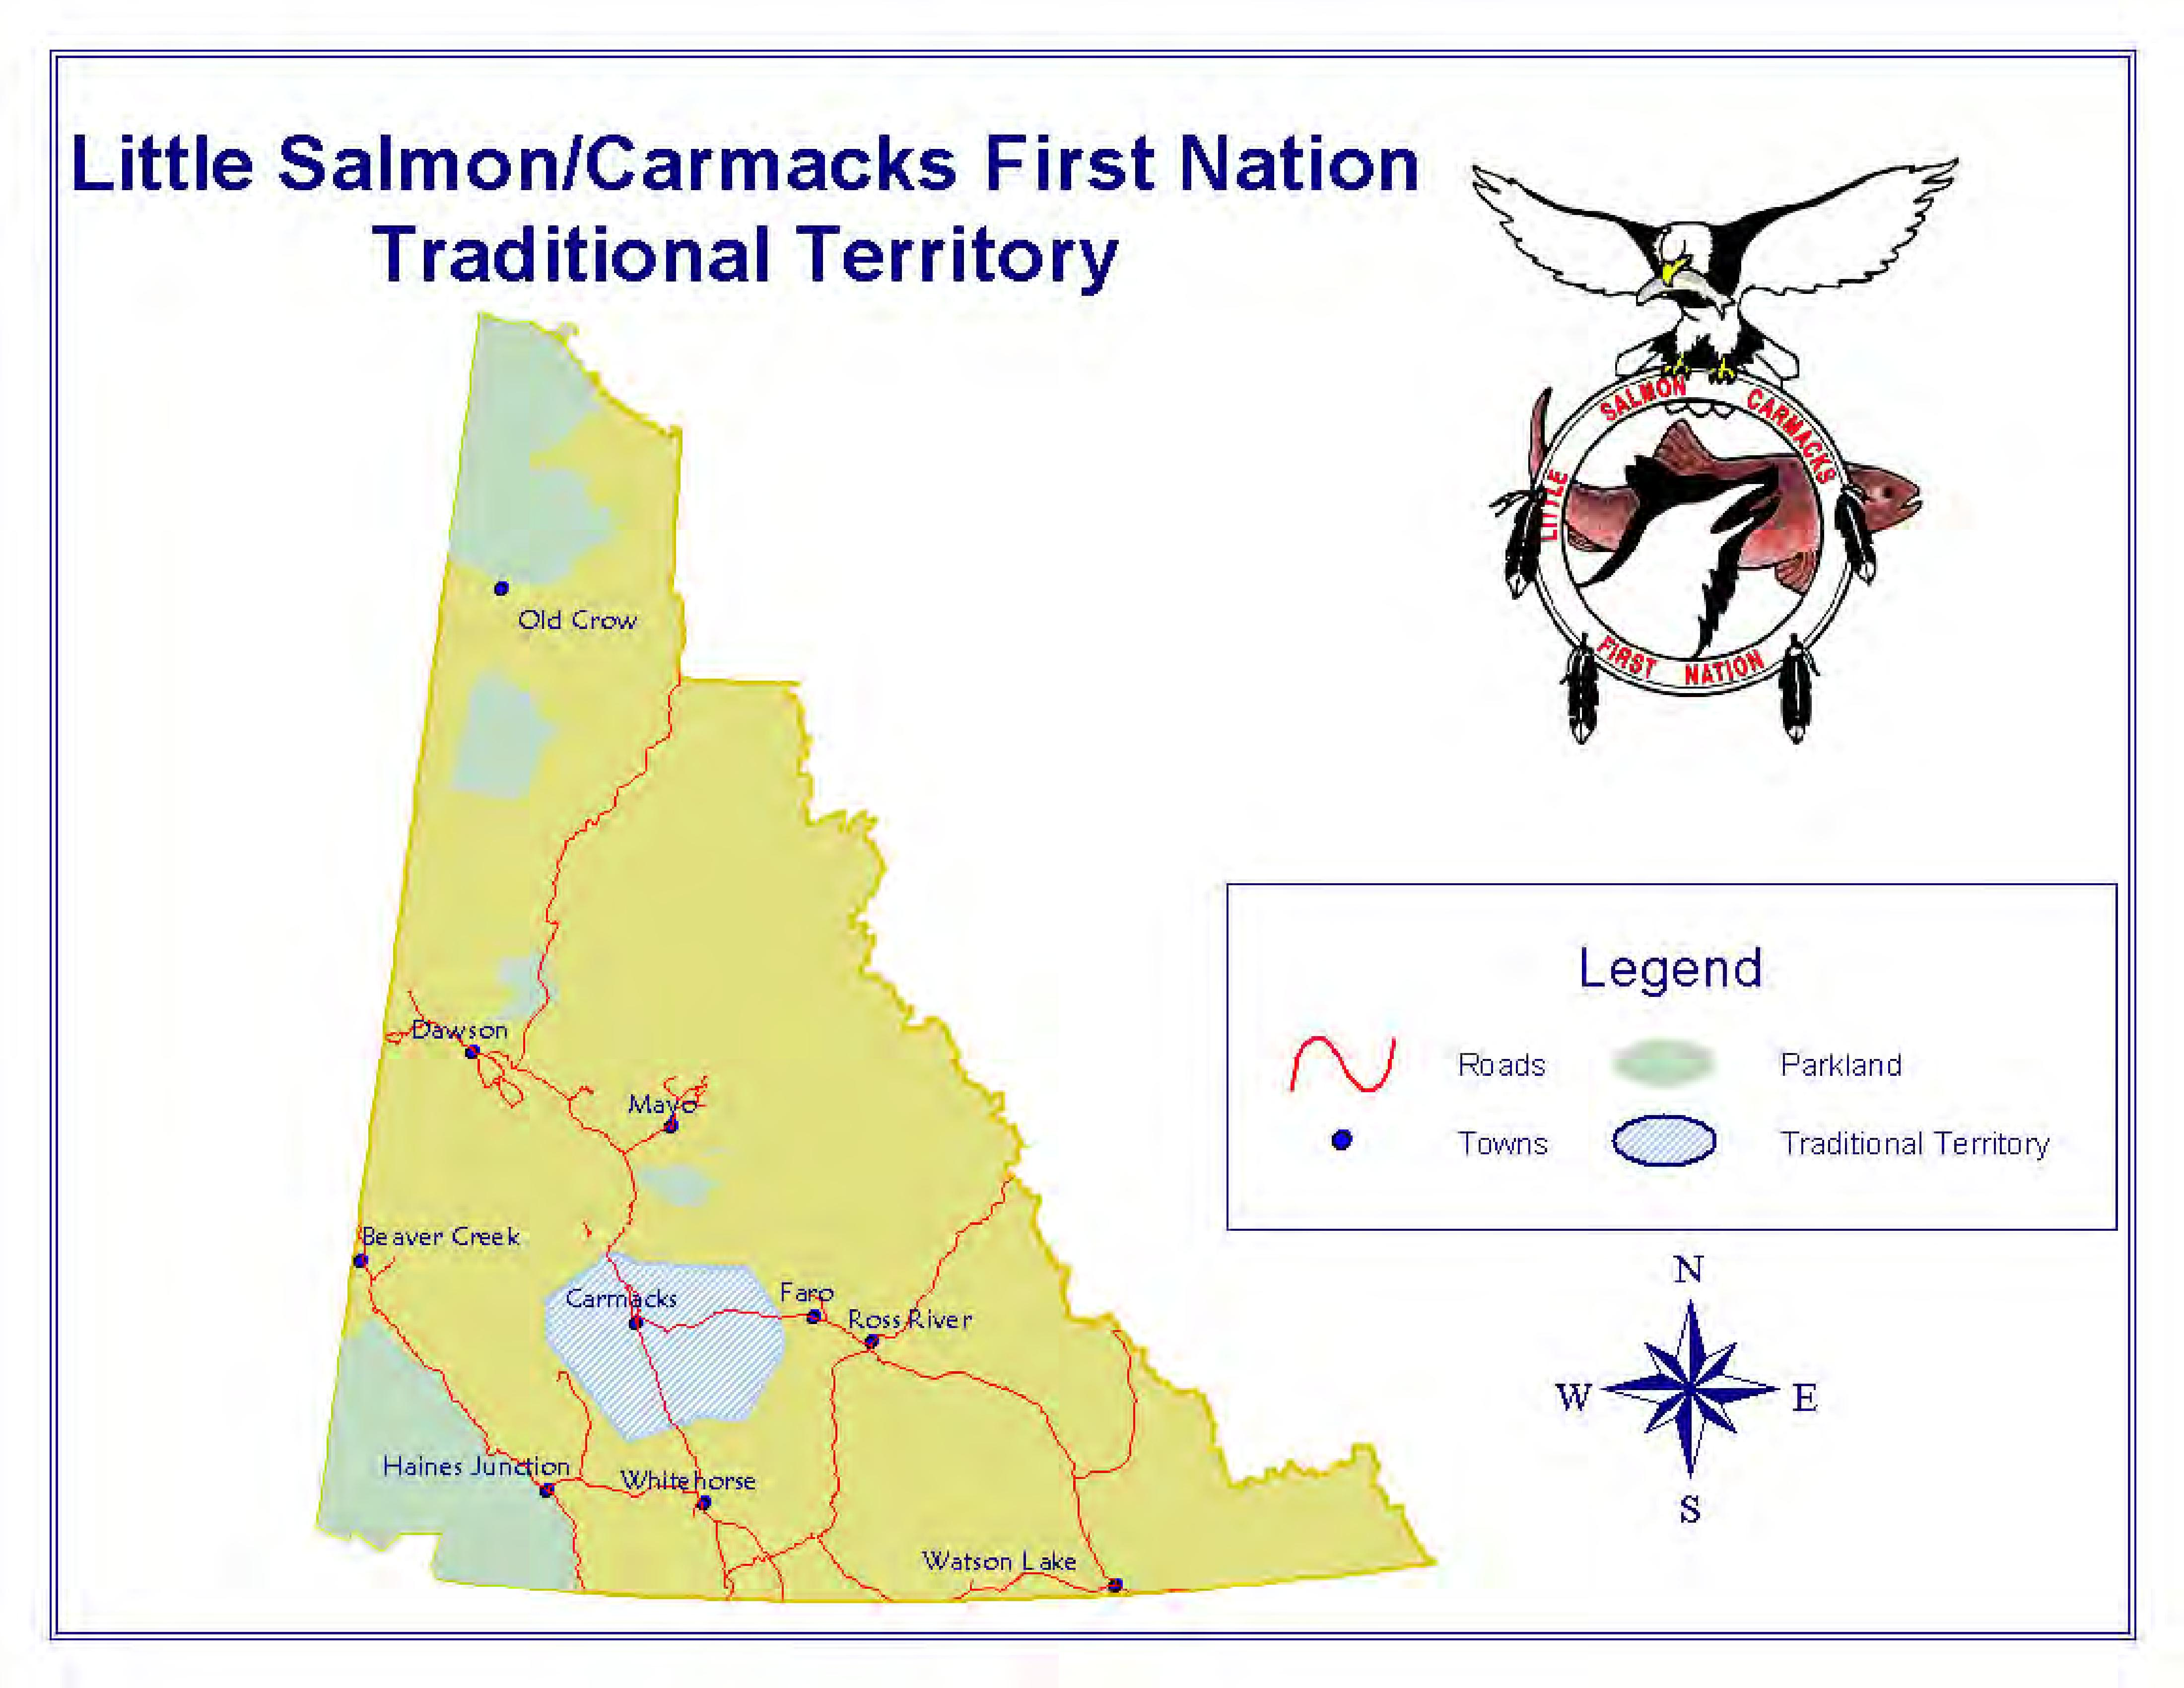 LSCFN Traditional Territory